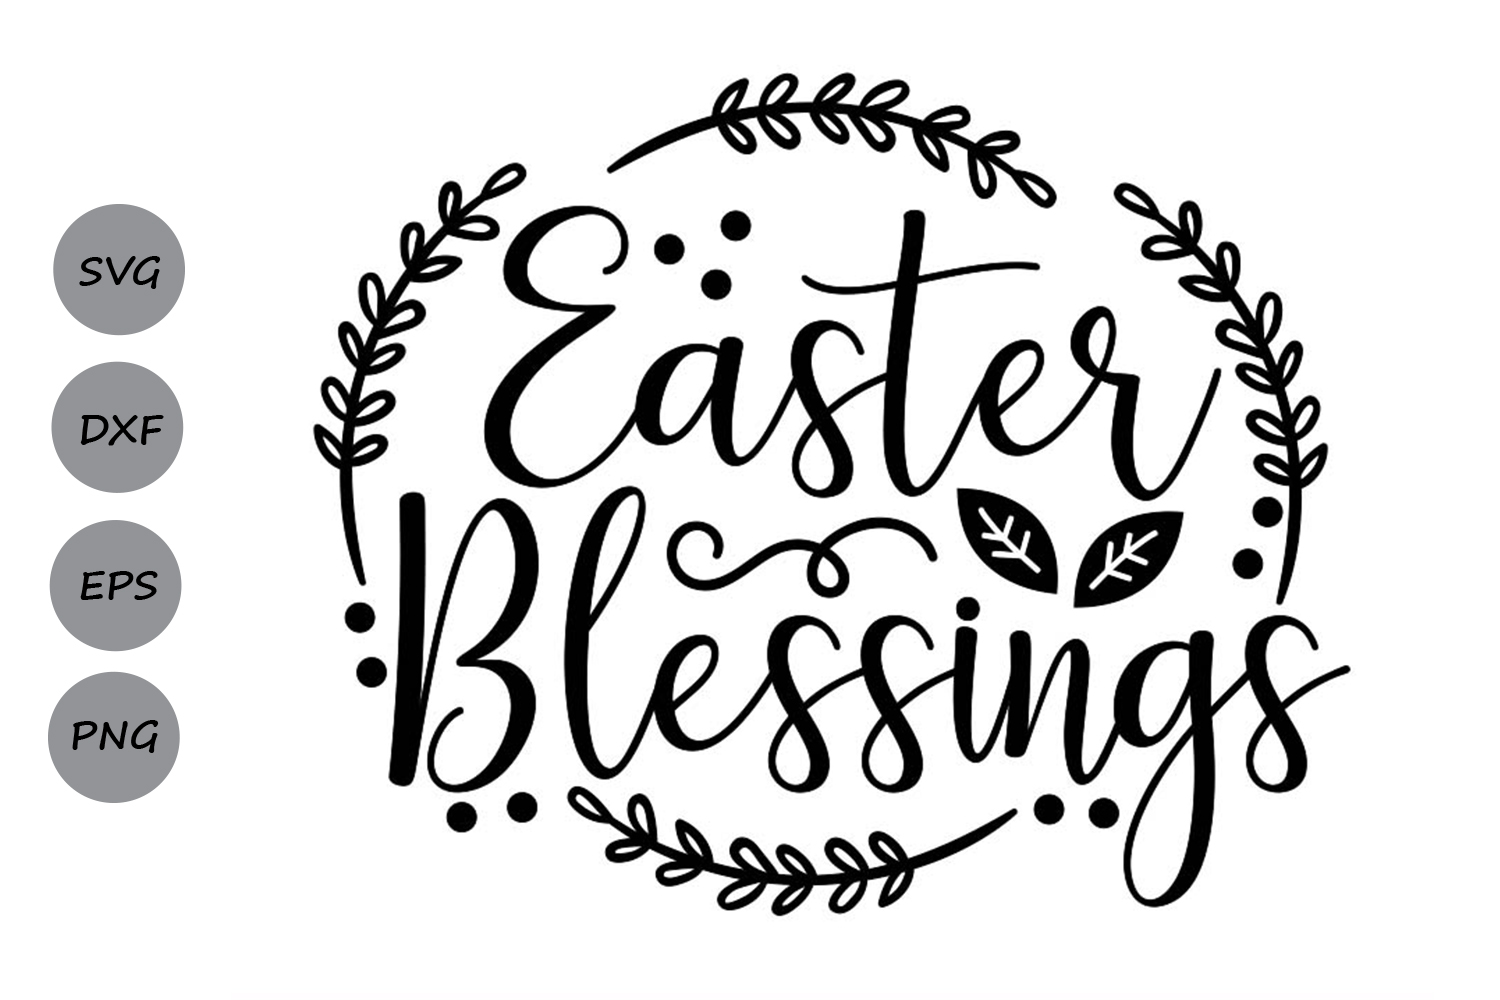 Download Free Easter Blessings Svg Graphic By Cosmosfineart Creative Fabrica for Cricut Explore, Silhouette and other cutting machines.